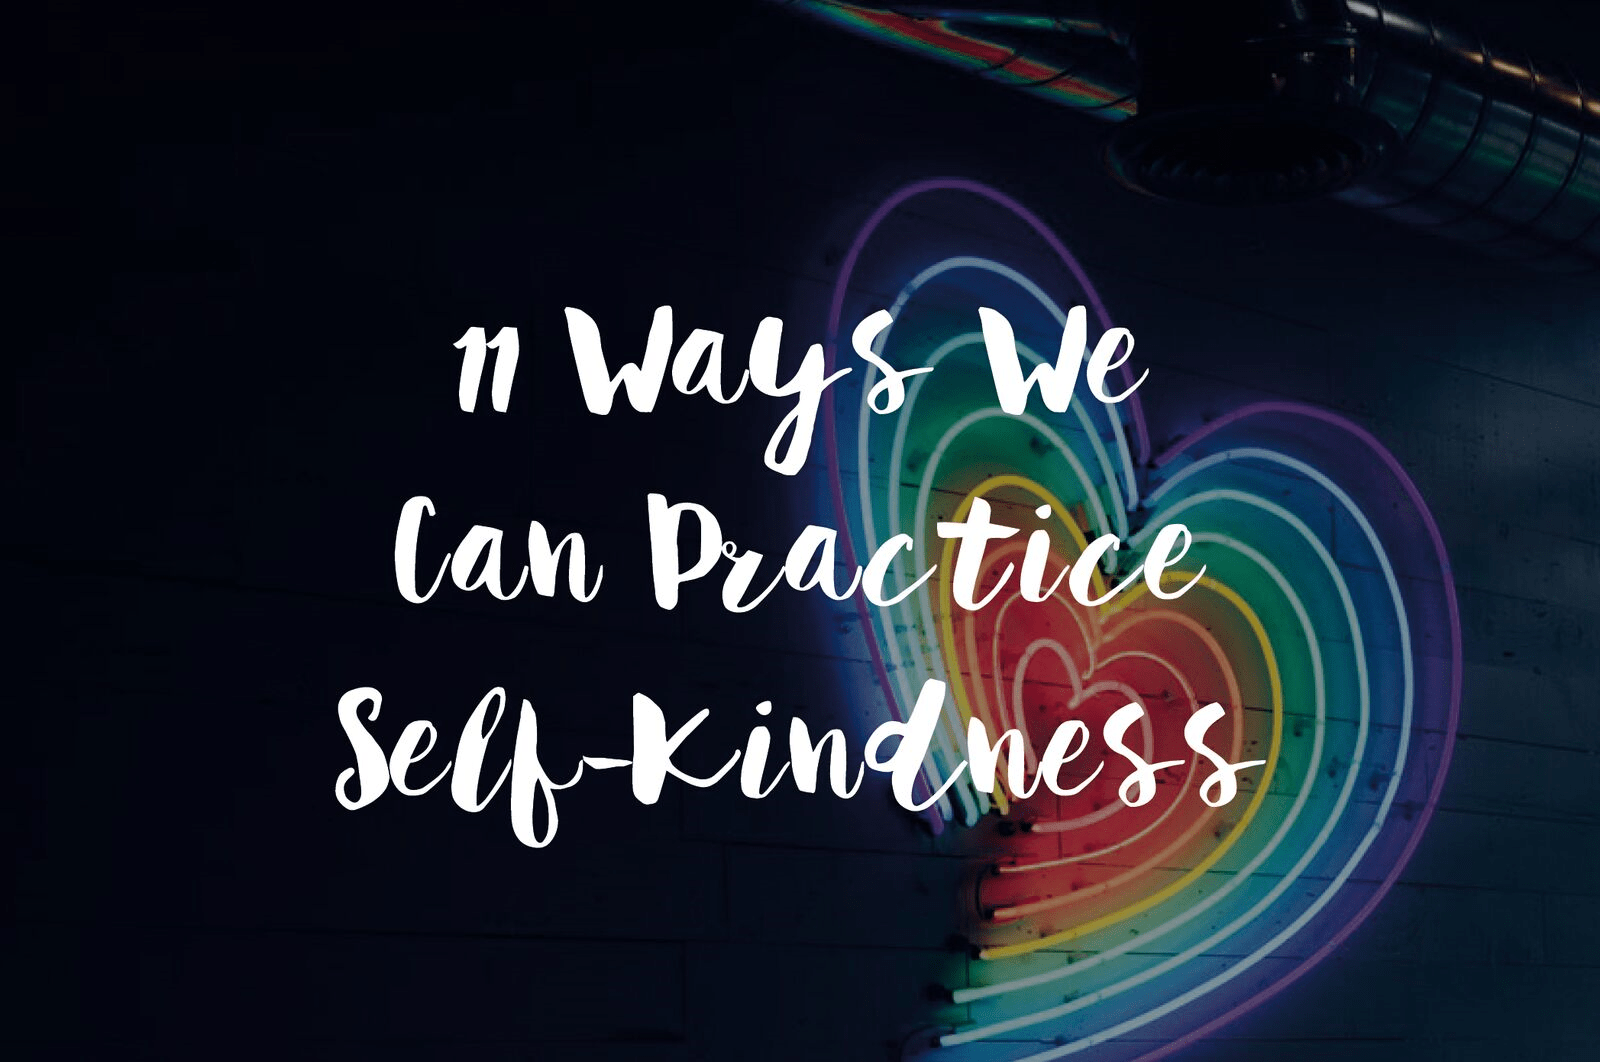 11 Ways We Can Practice Self-Kindness